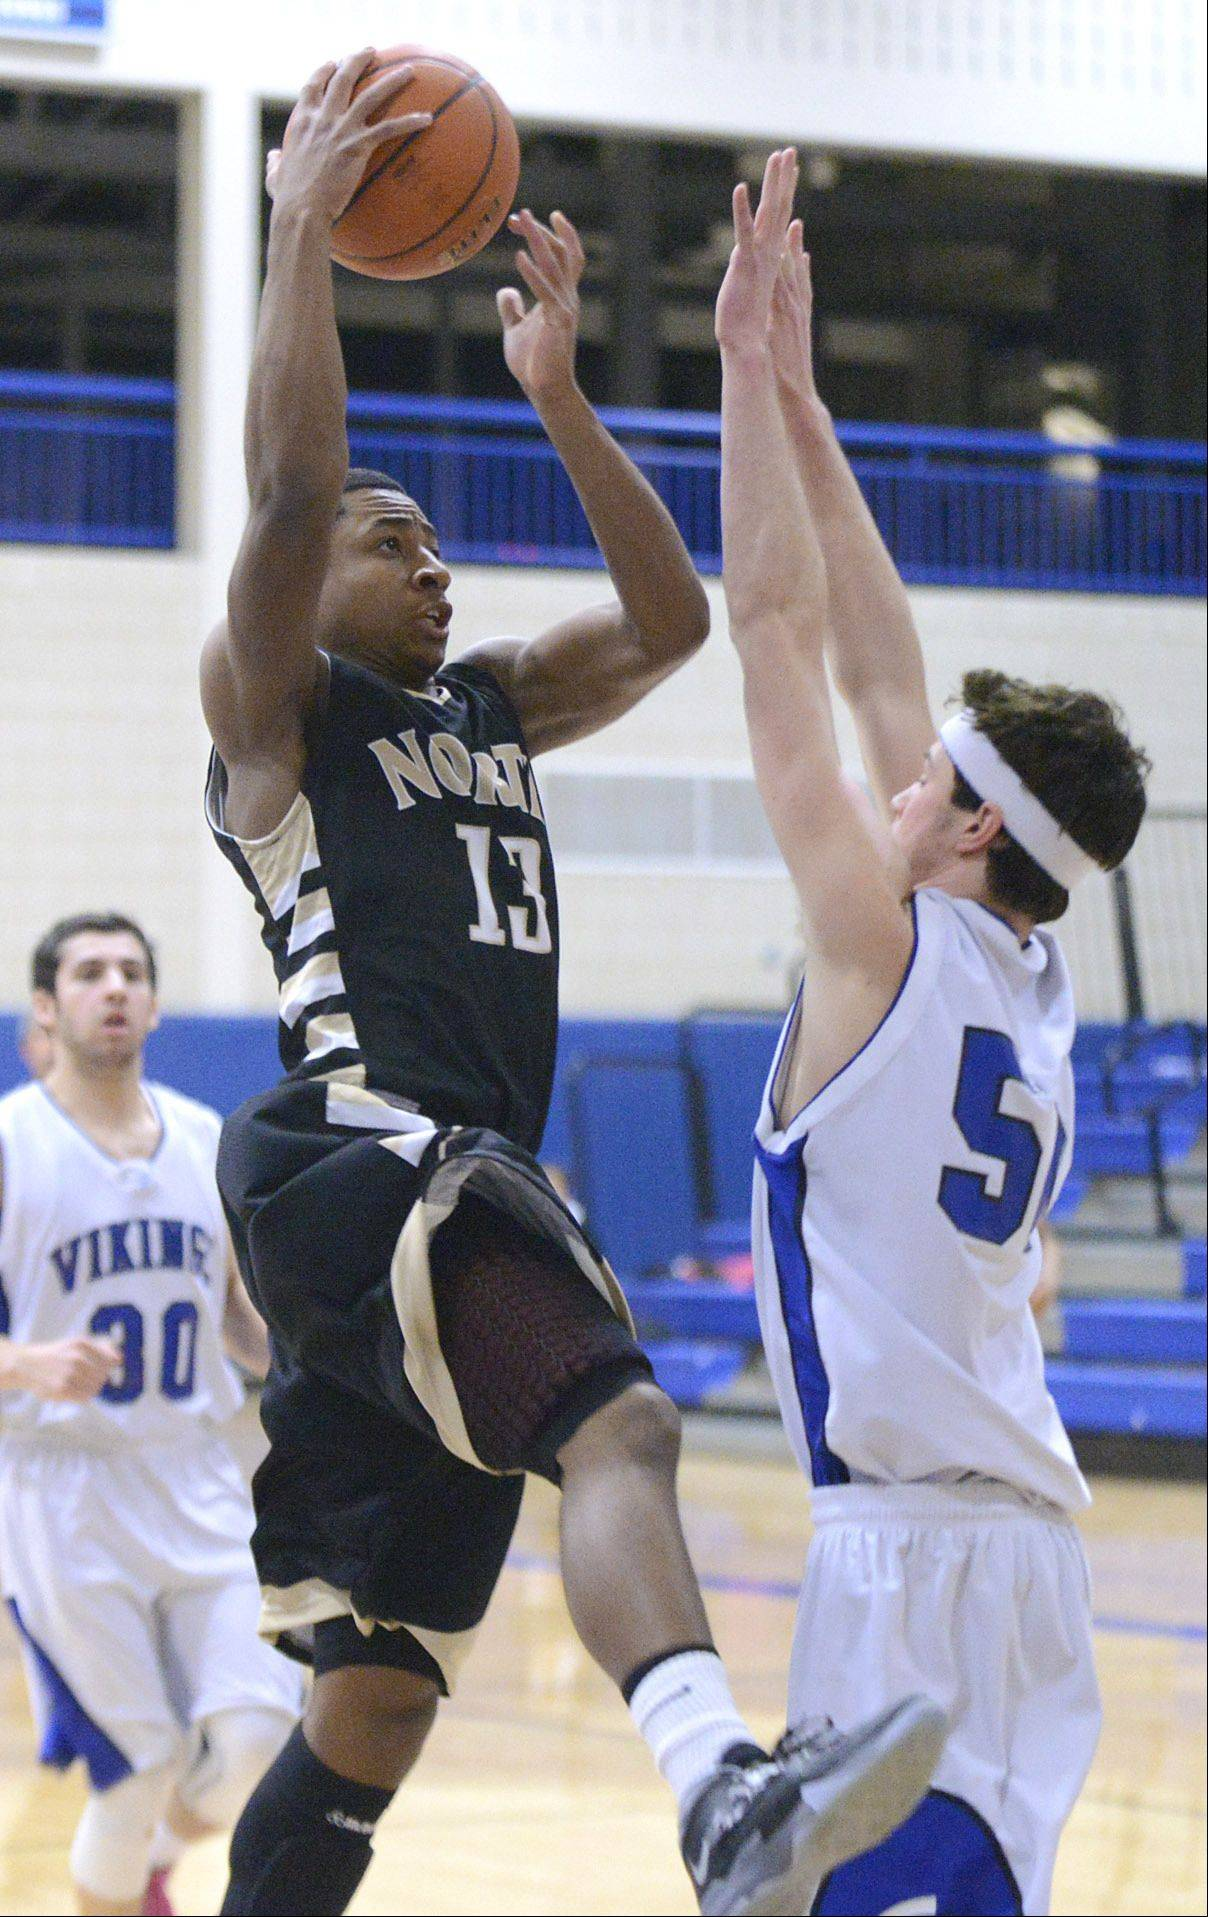 Glenbard North's Justin Jackson shoots over a block by Geneva's Mike Landi in the first quarter on Tuesday, January 21.